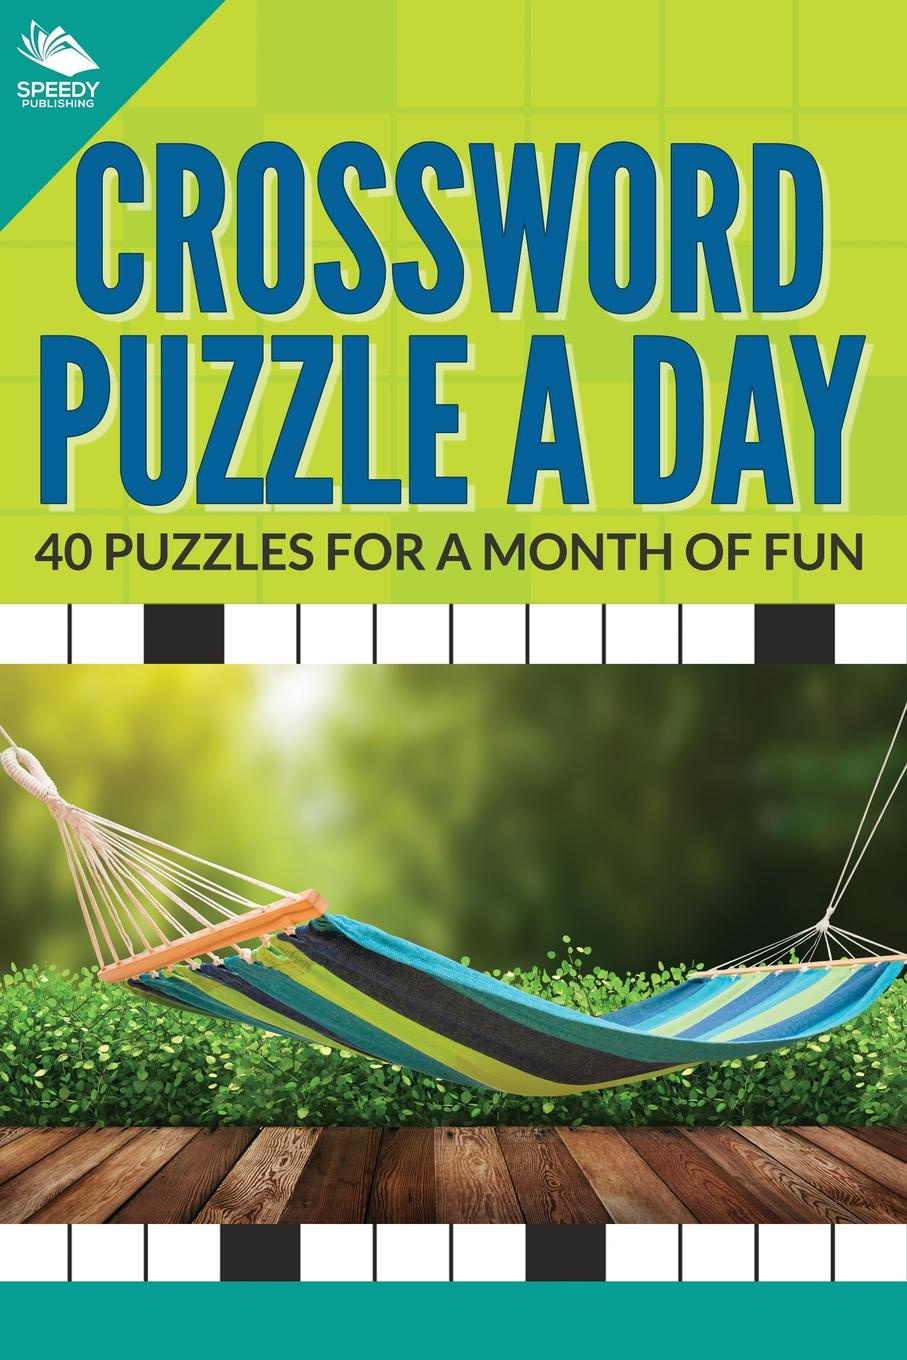 Speedy Publishing LLC. Crossword Puzzle a Day. 40 Puzzles For A Month of Fun